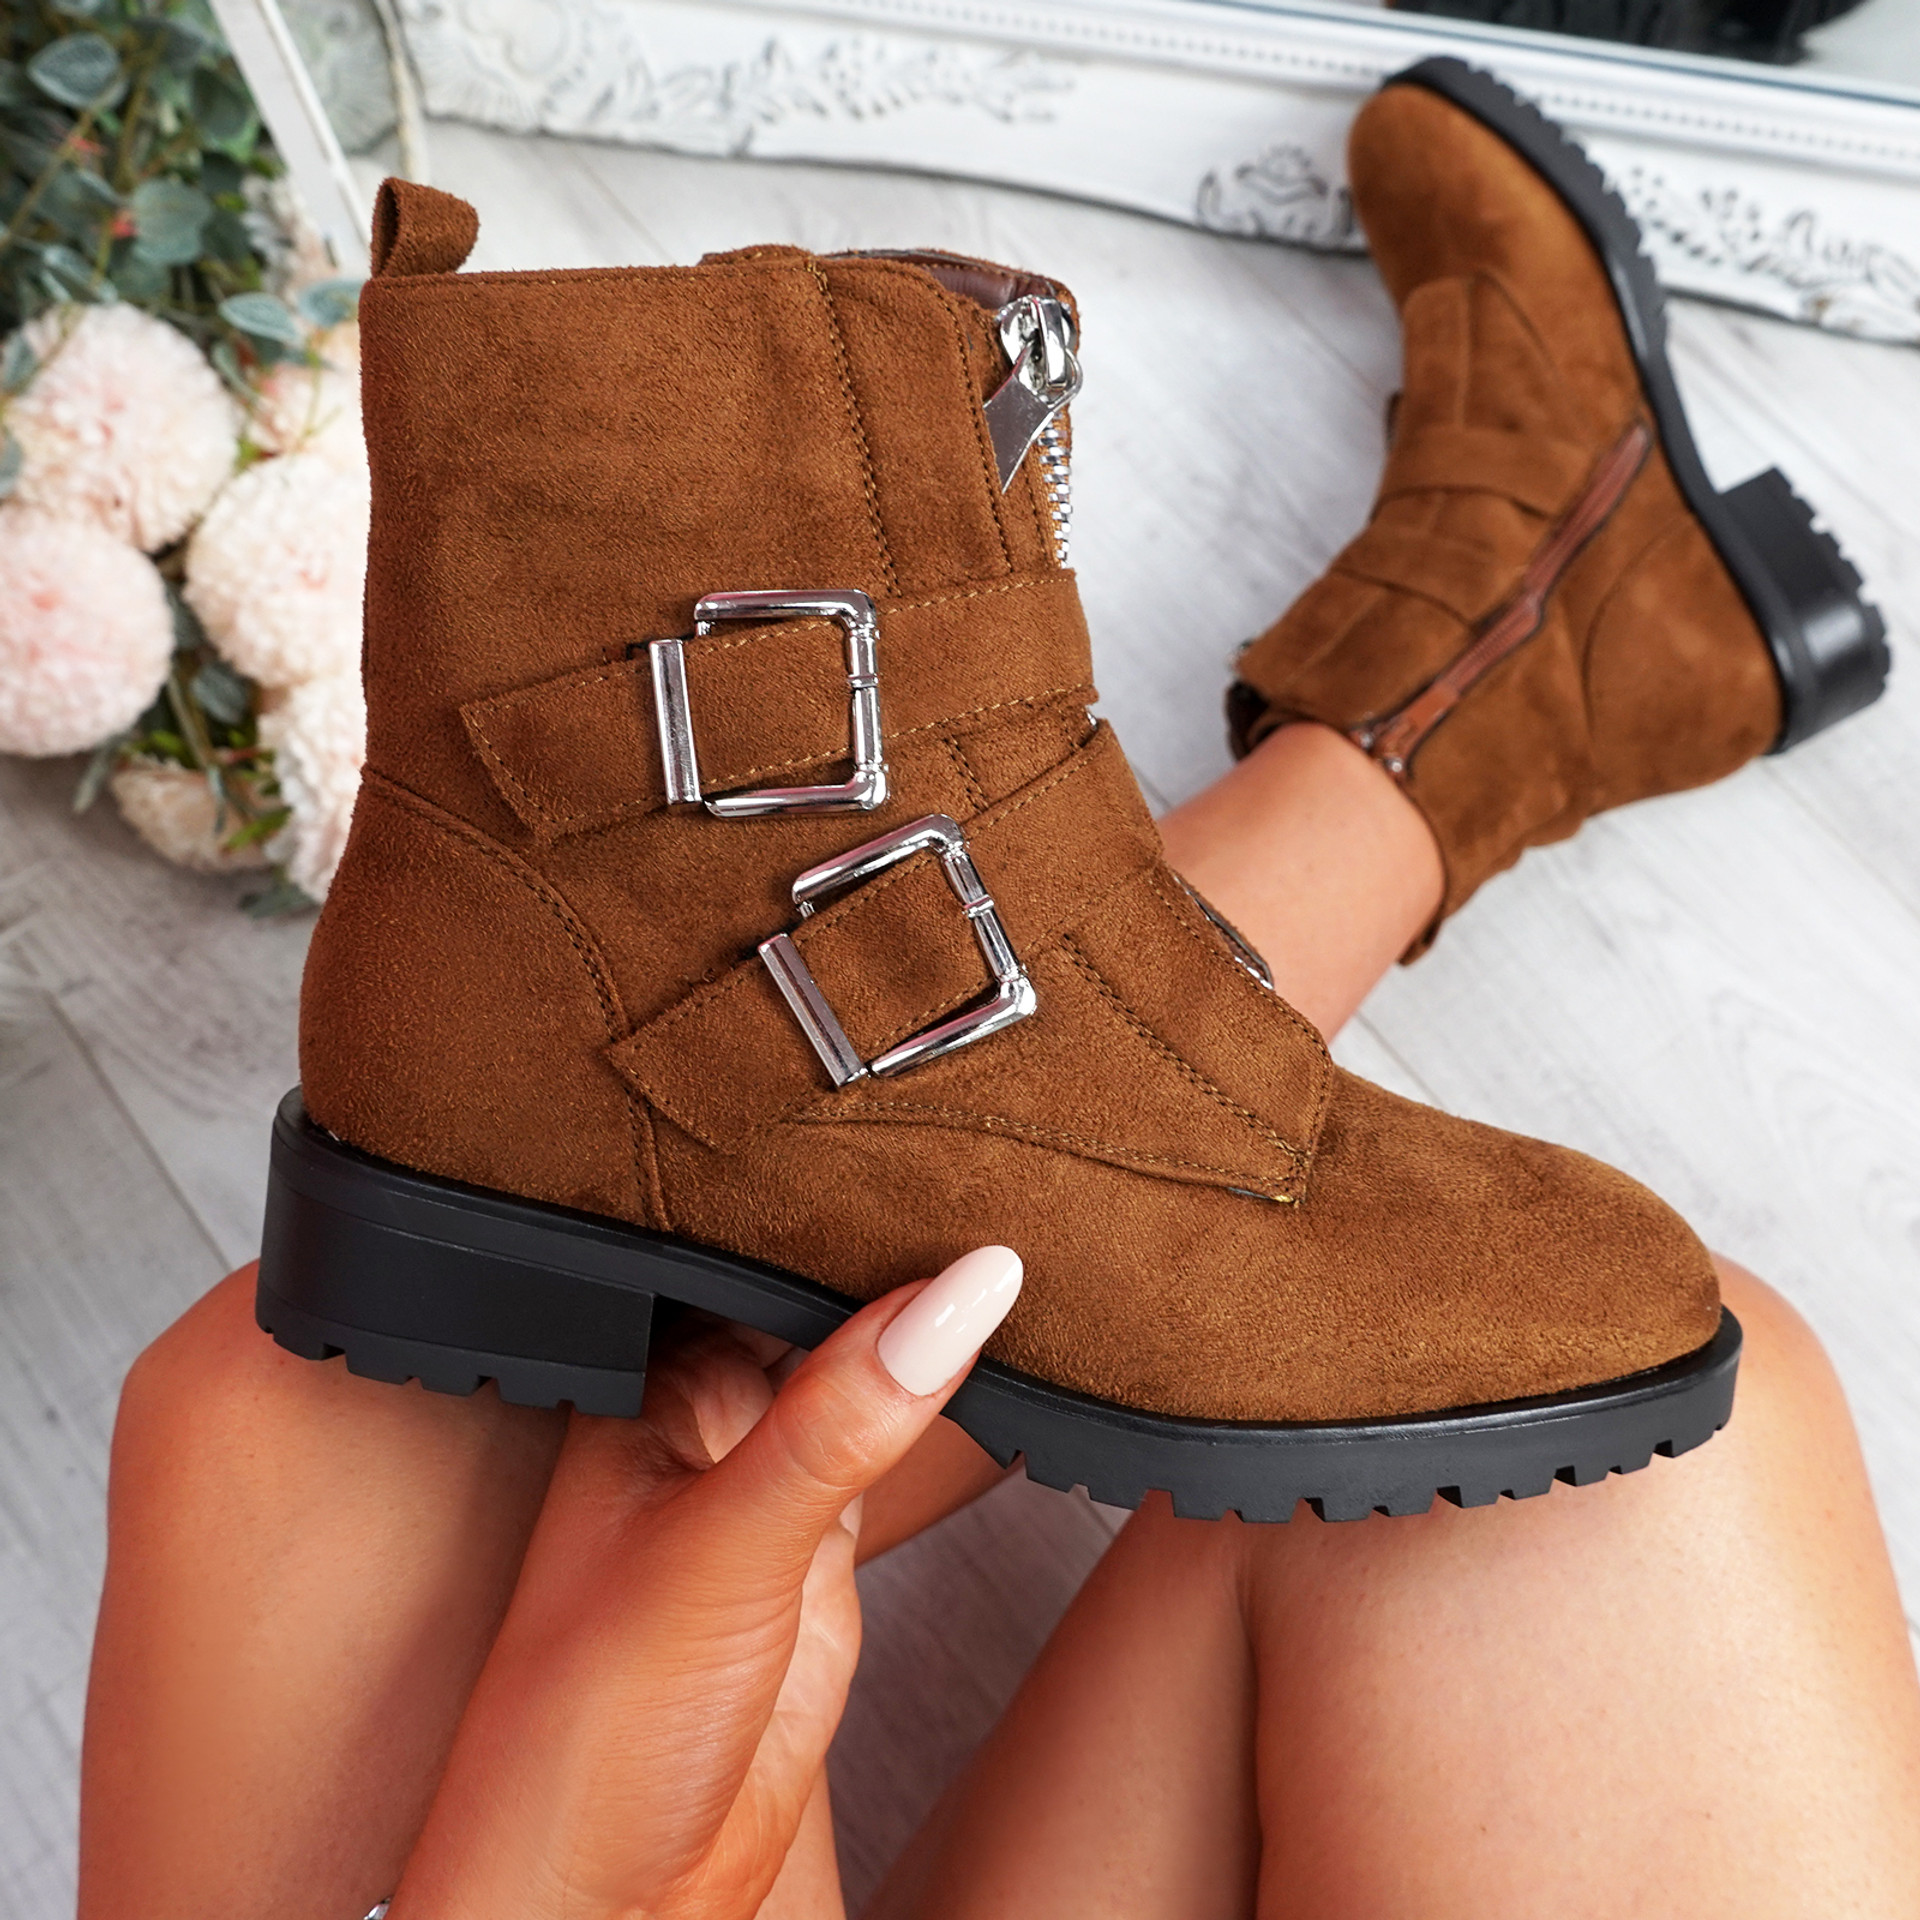 Munno Camel Zip Ankle Boots